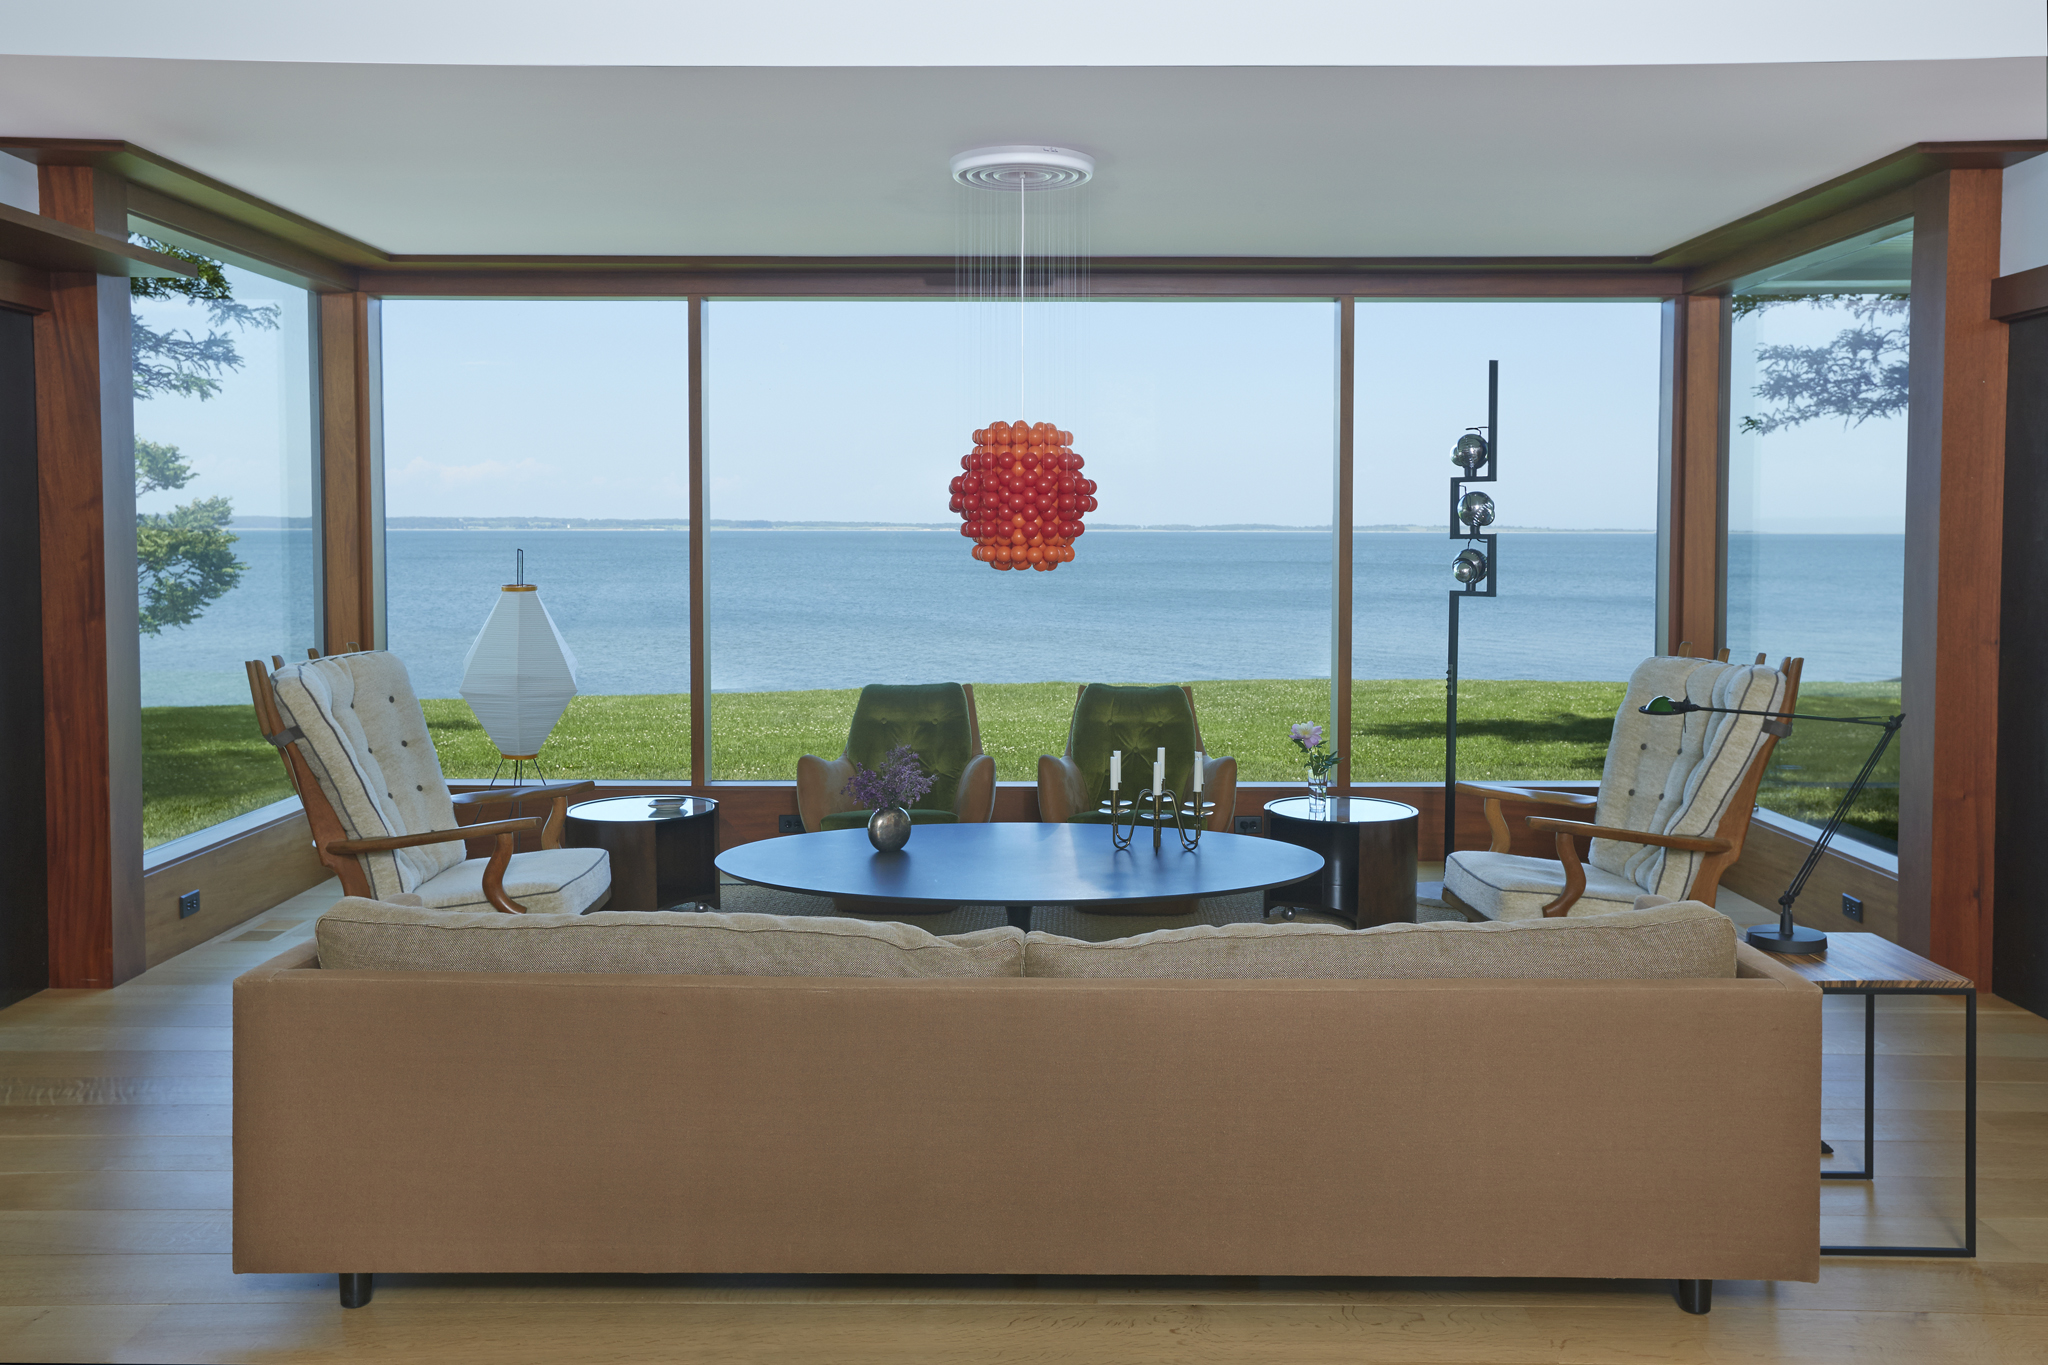 An Amazing Renovation of a Bayfront Home in Springs - Curbed Hamptons